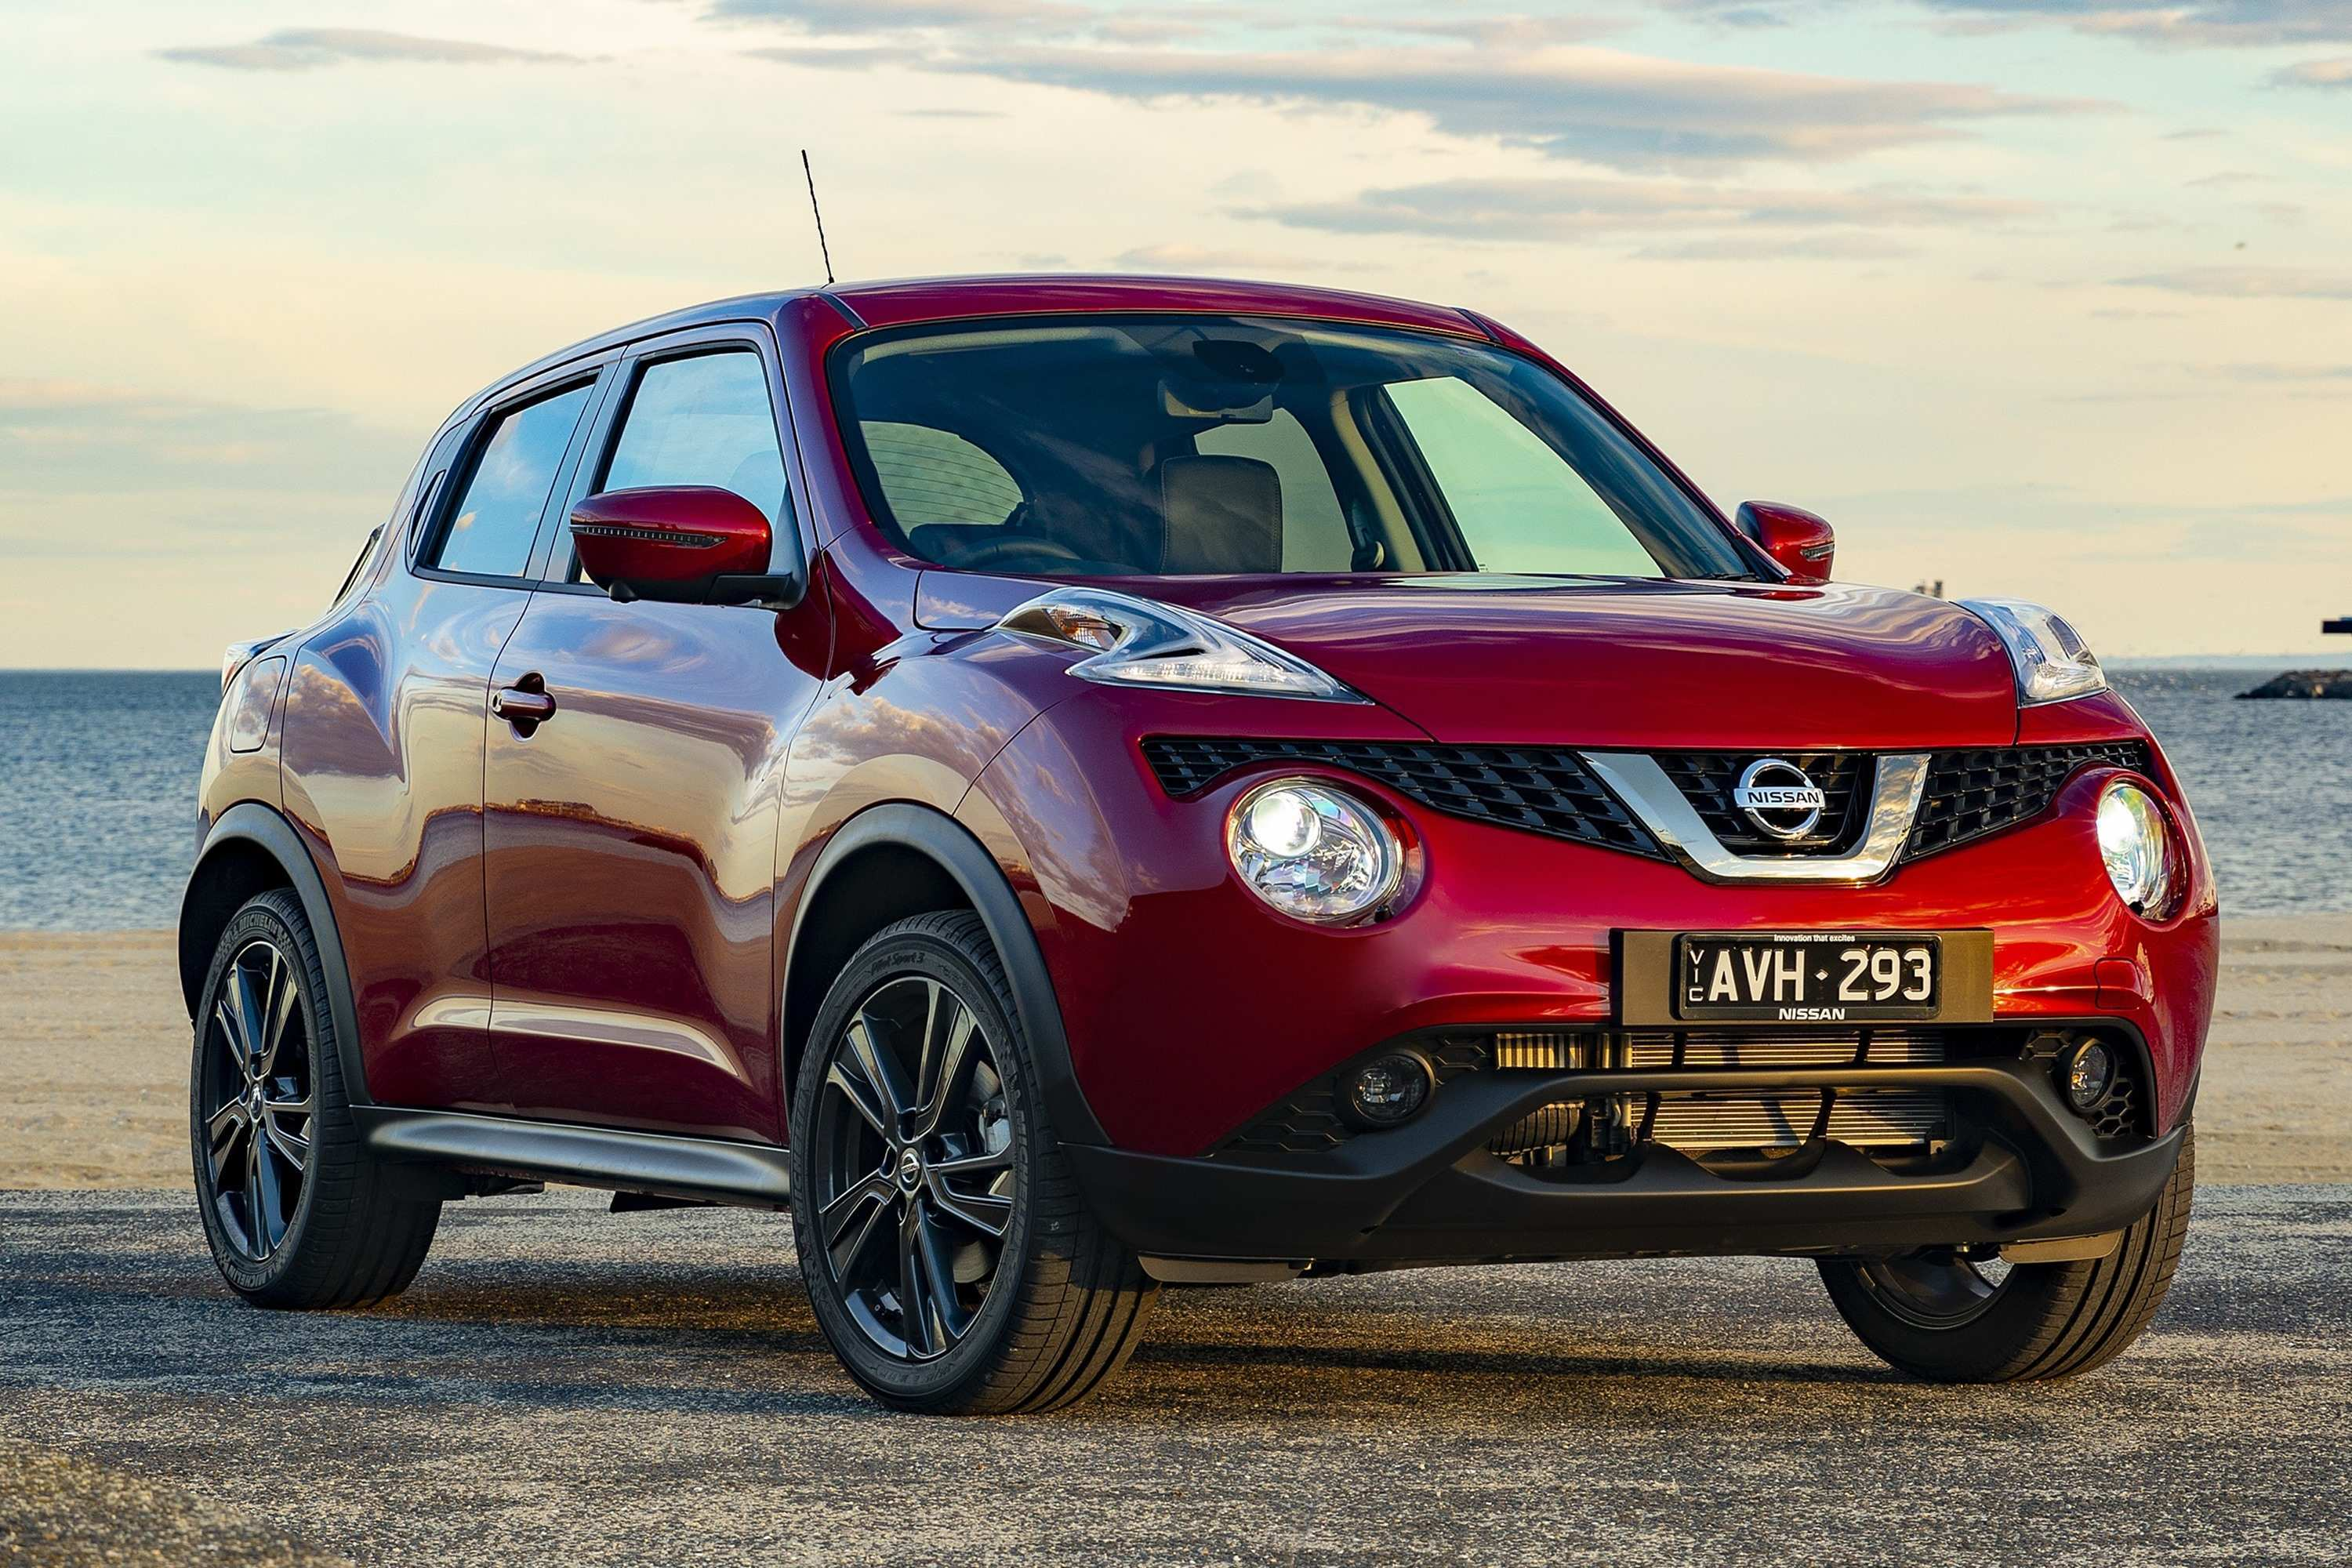 70 The 2019 Nissan Juke Review Price